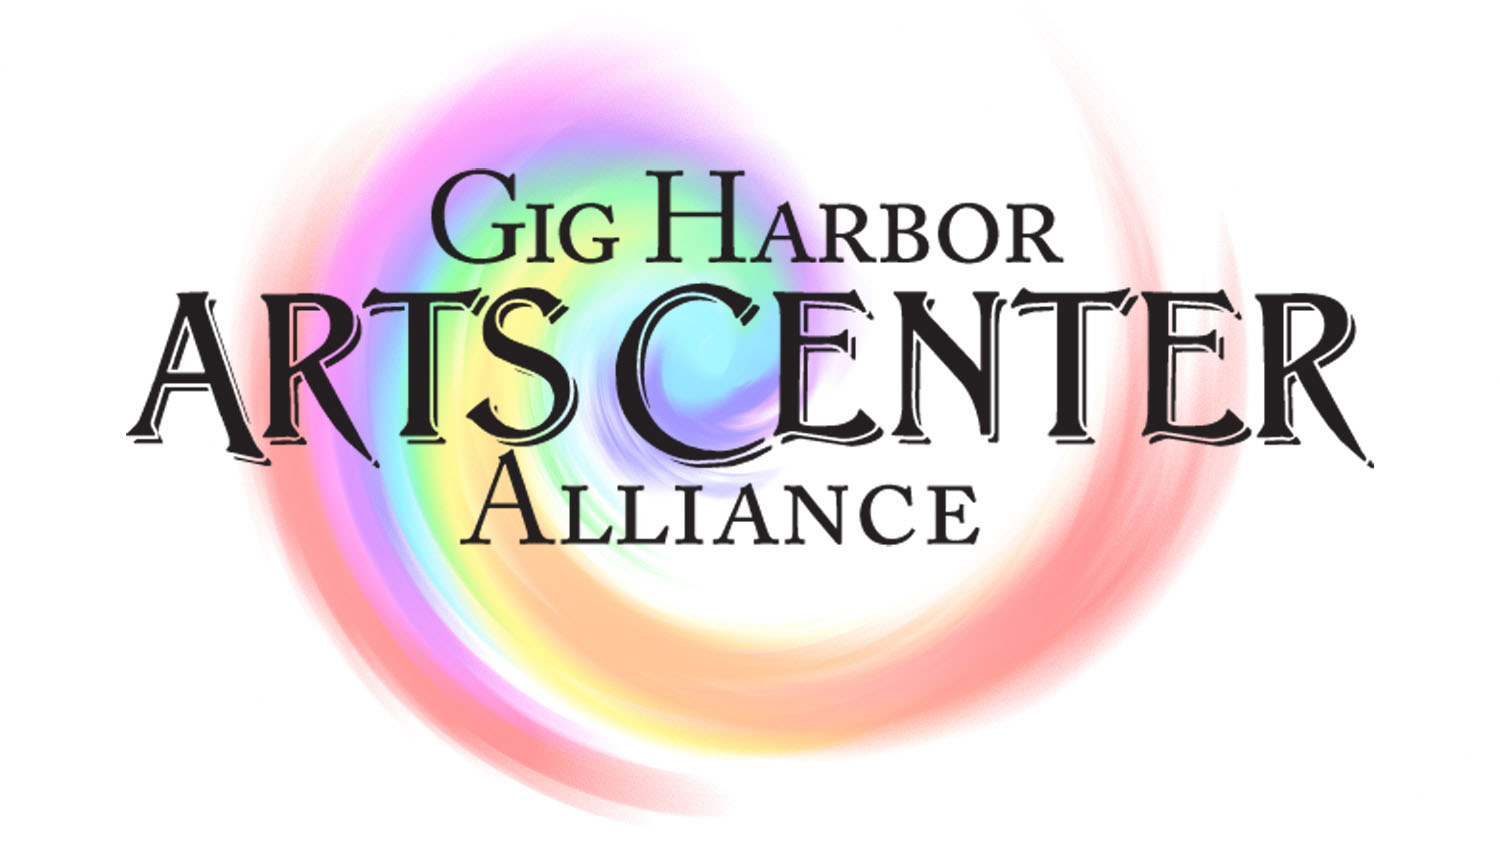 Gig Harbor Arts Center Alliance